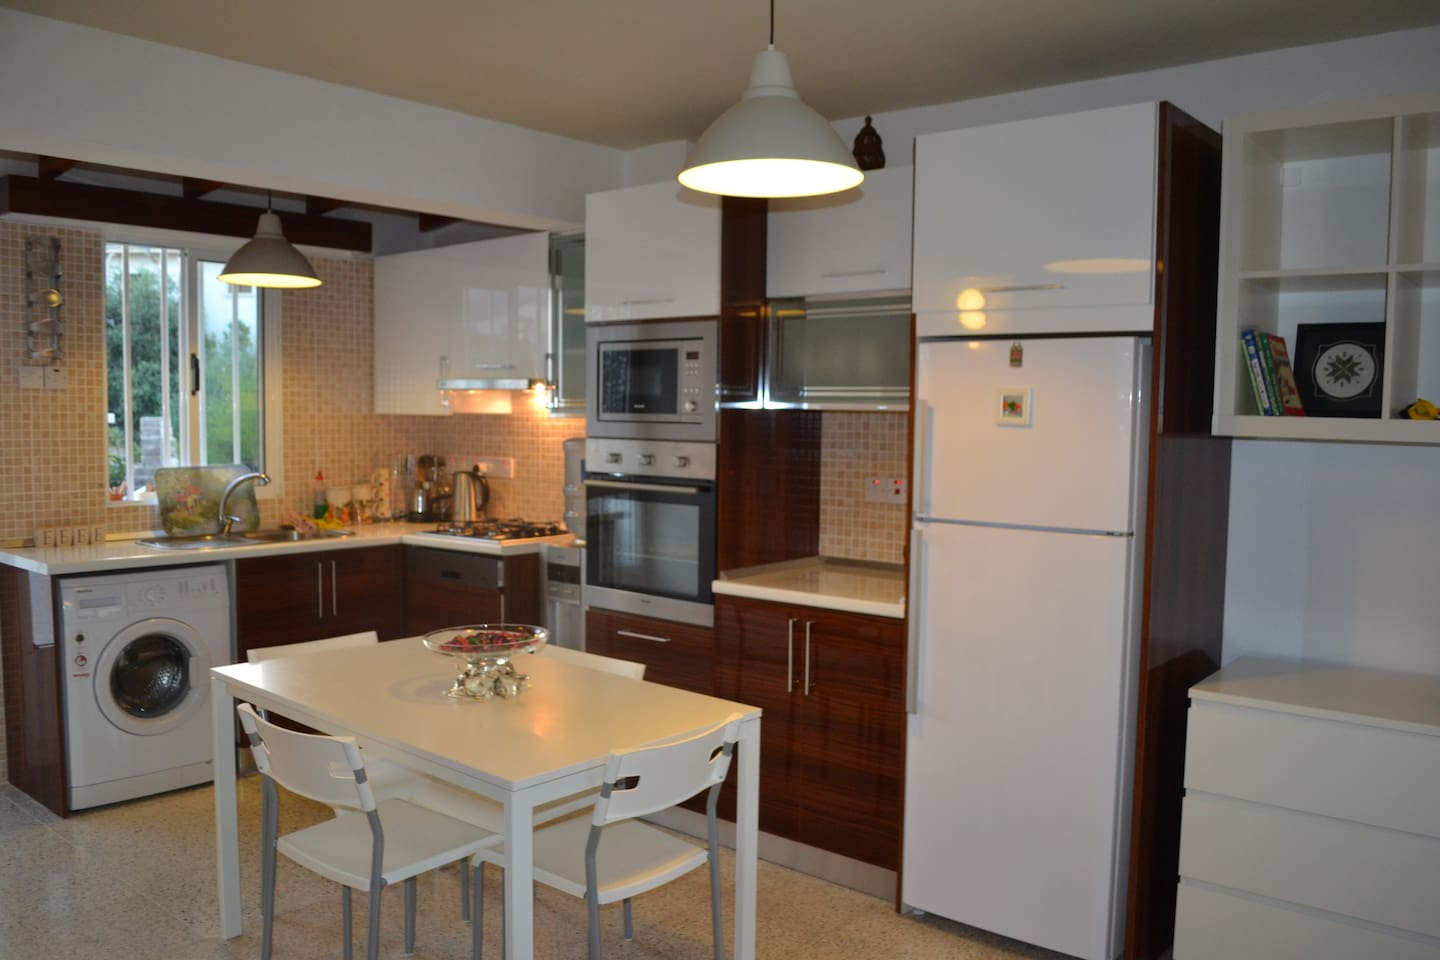 Kitchen is very modern and useful